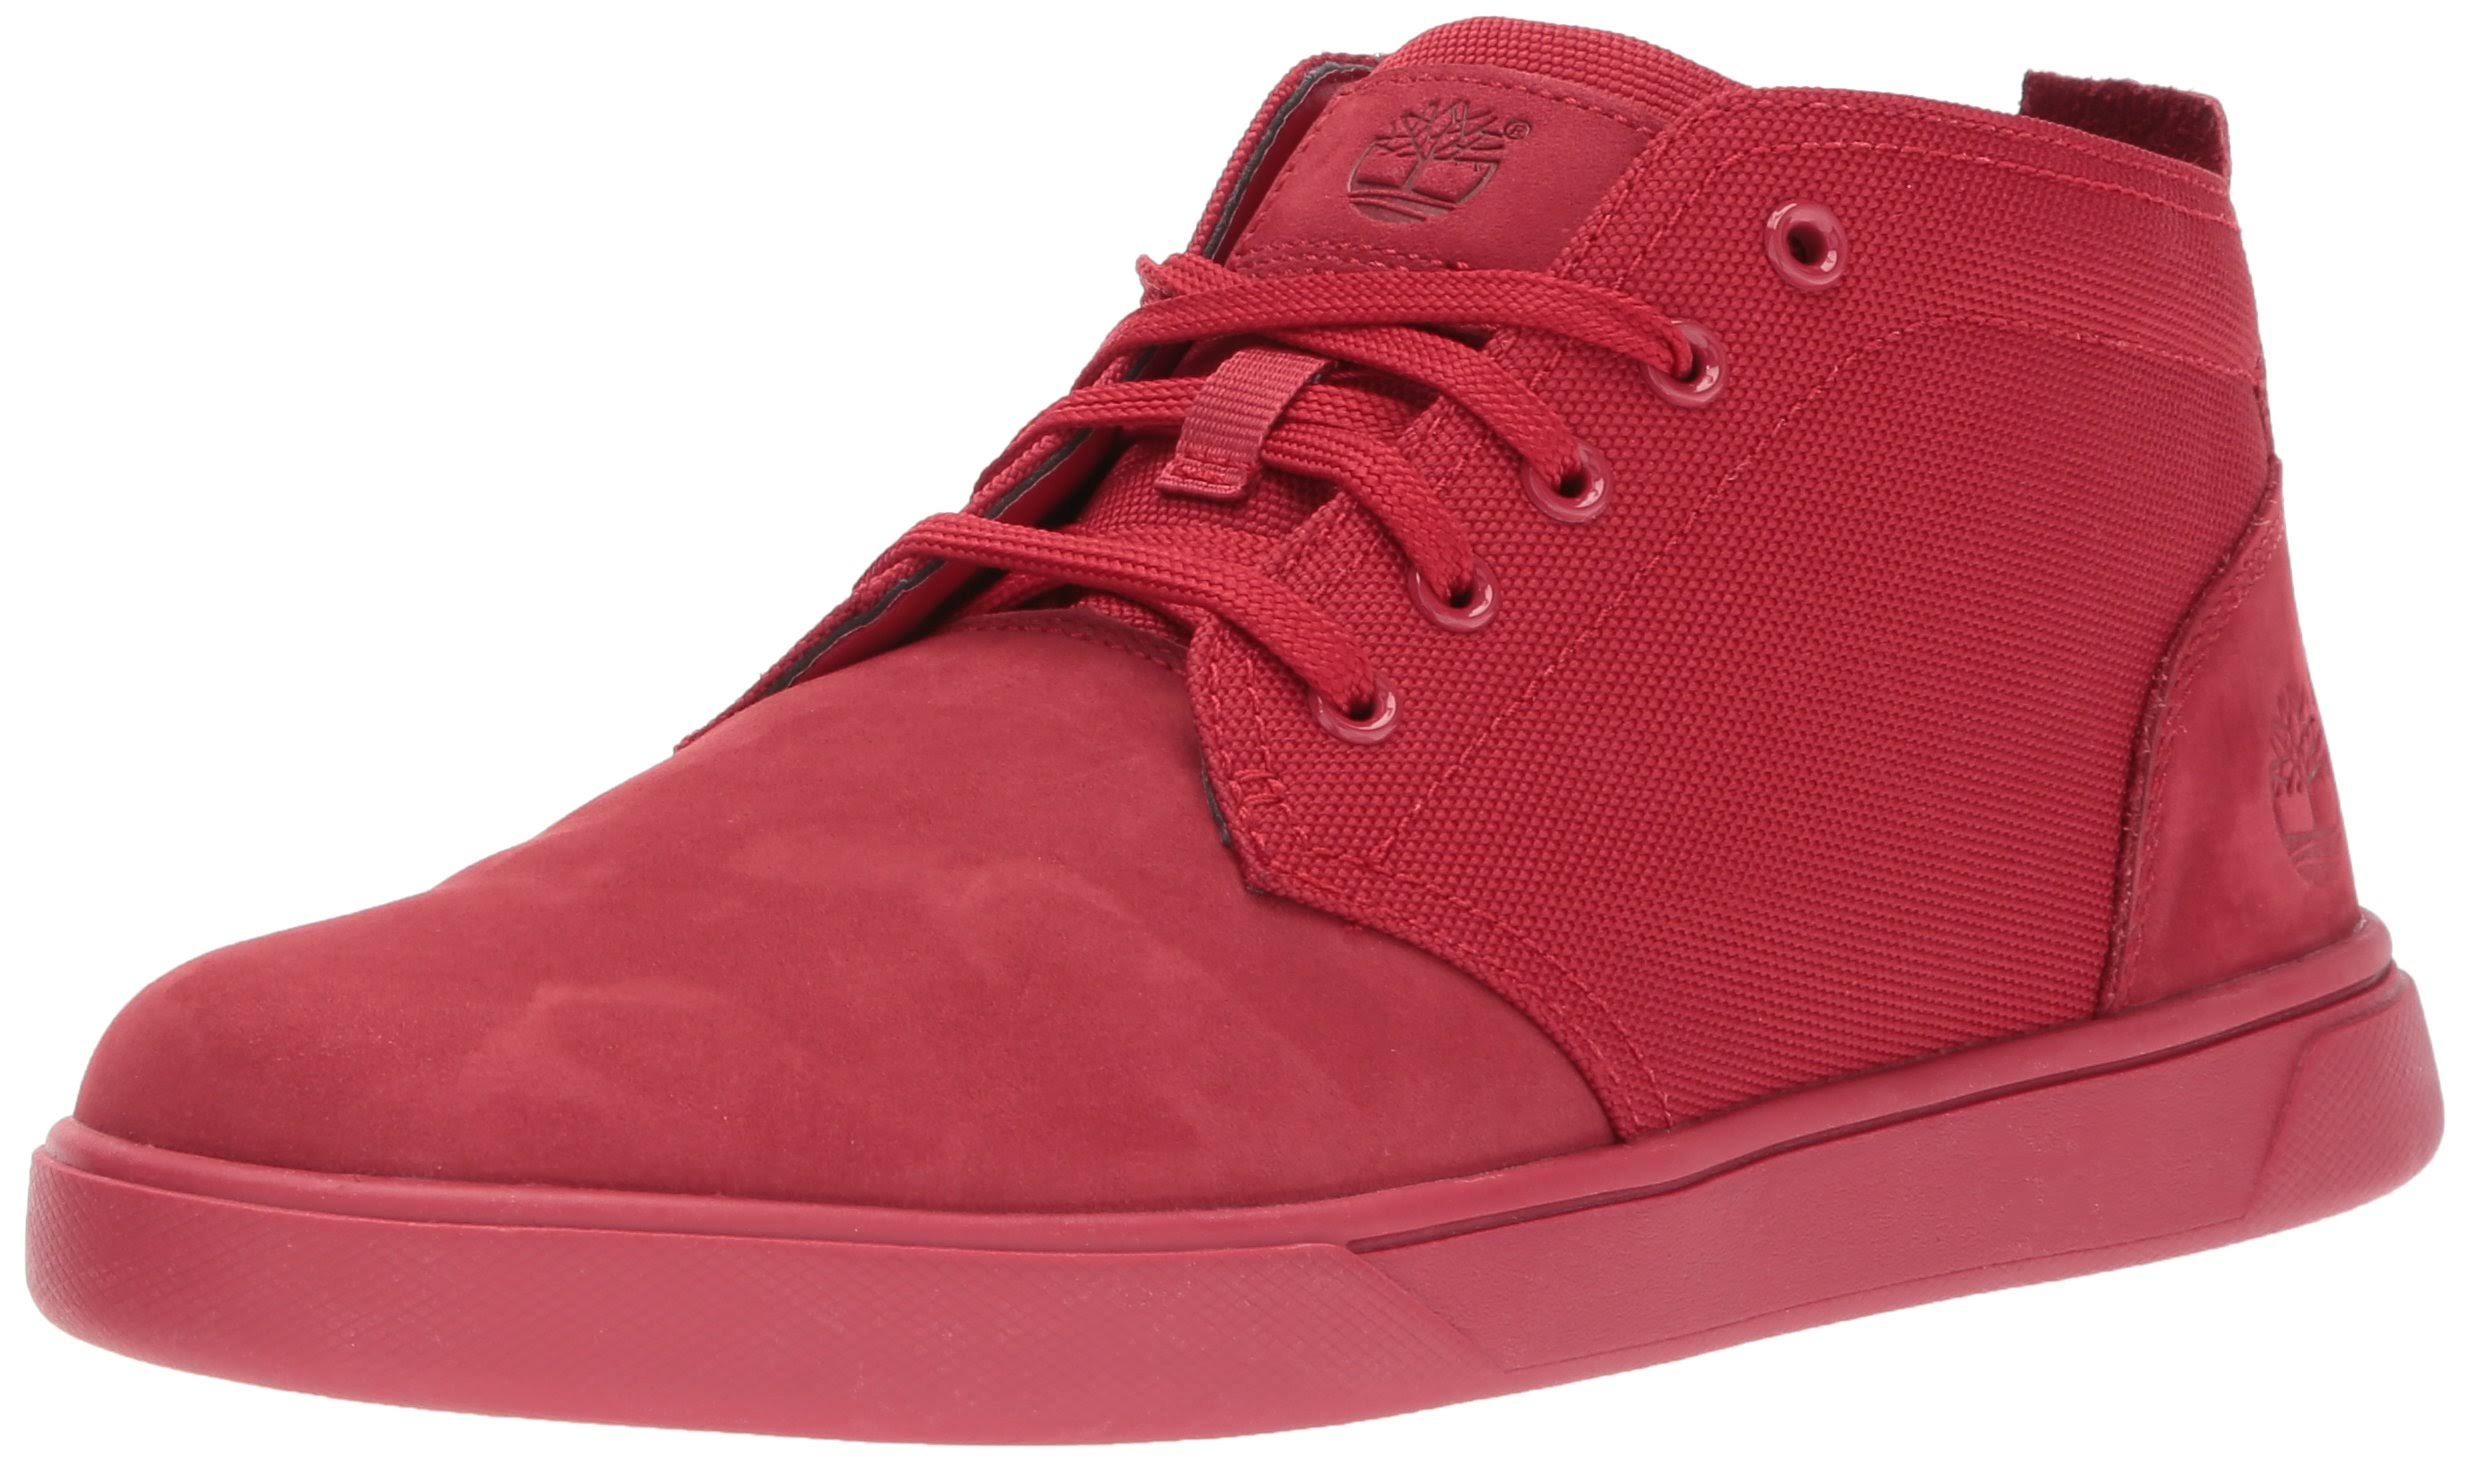 Groveton Monochromatic Chili Boot Pepper Ltt Timberland Nubuck Men's Chukka 5x0qRTT4